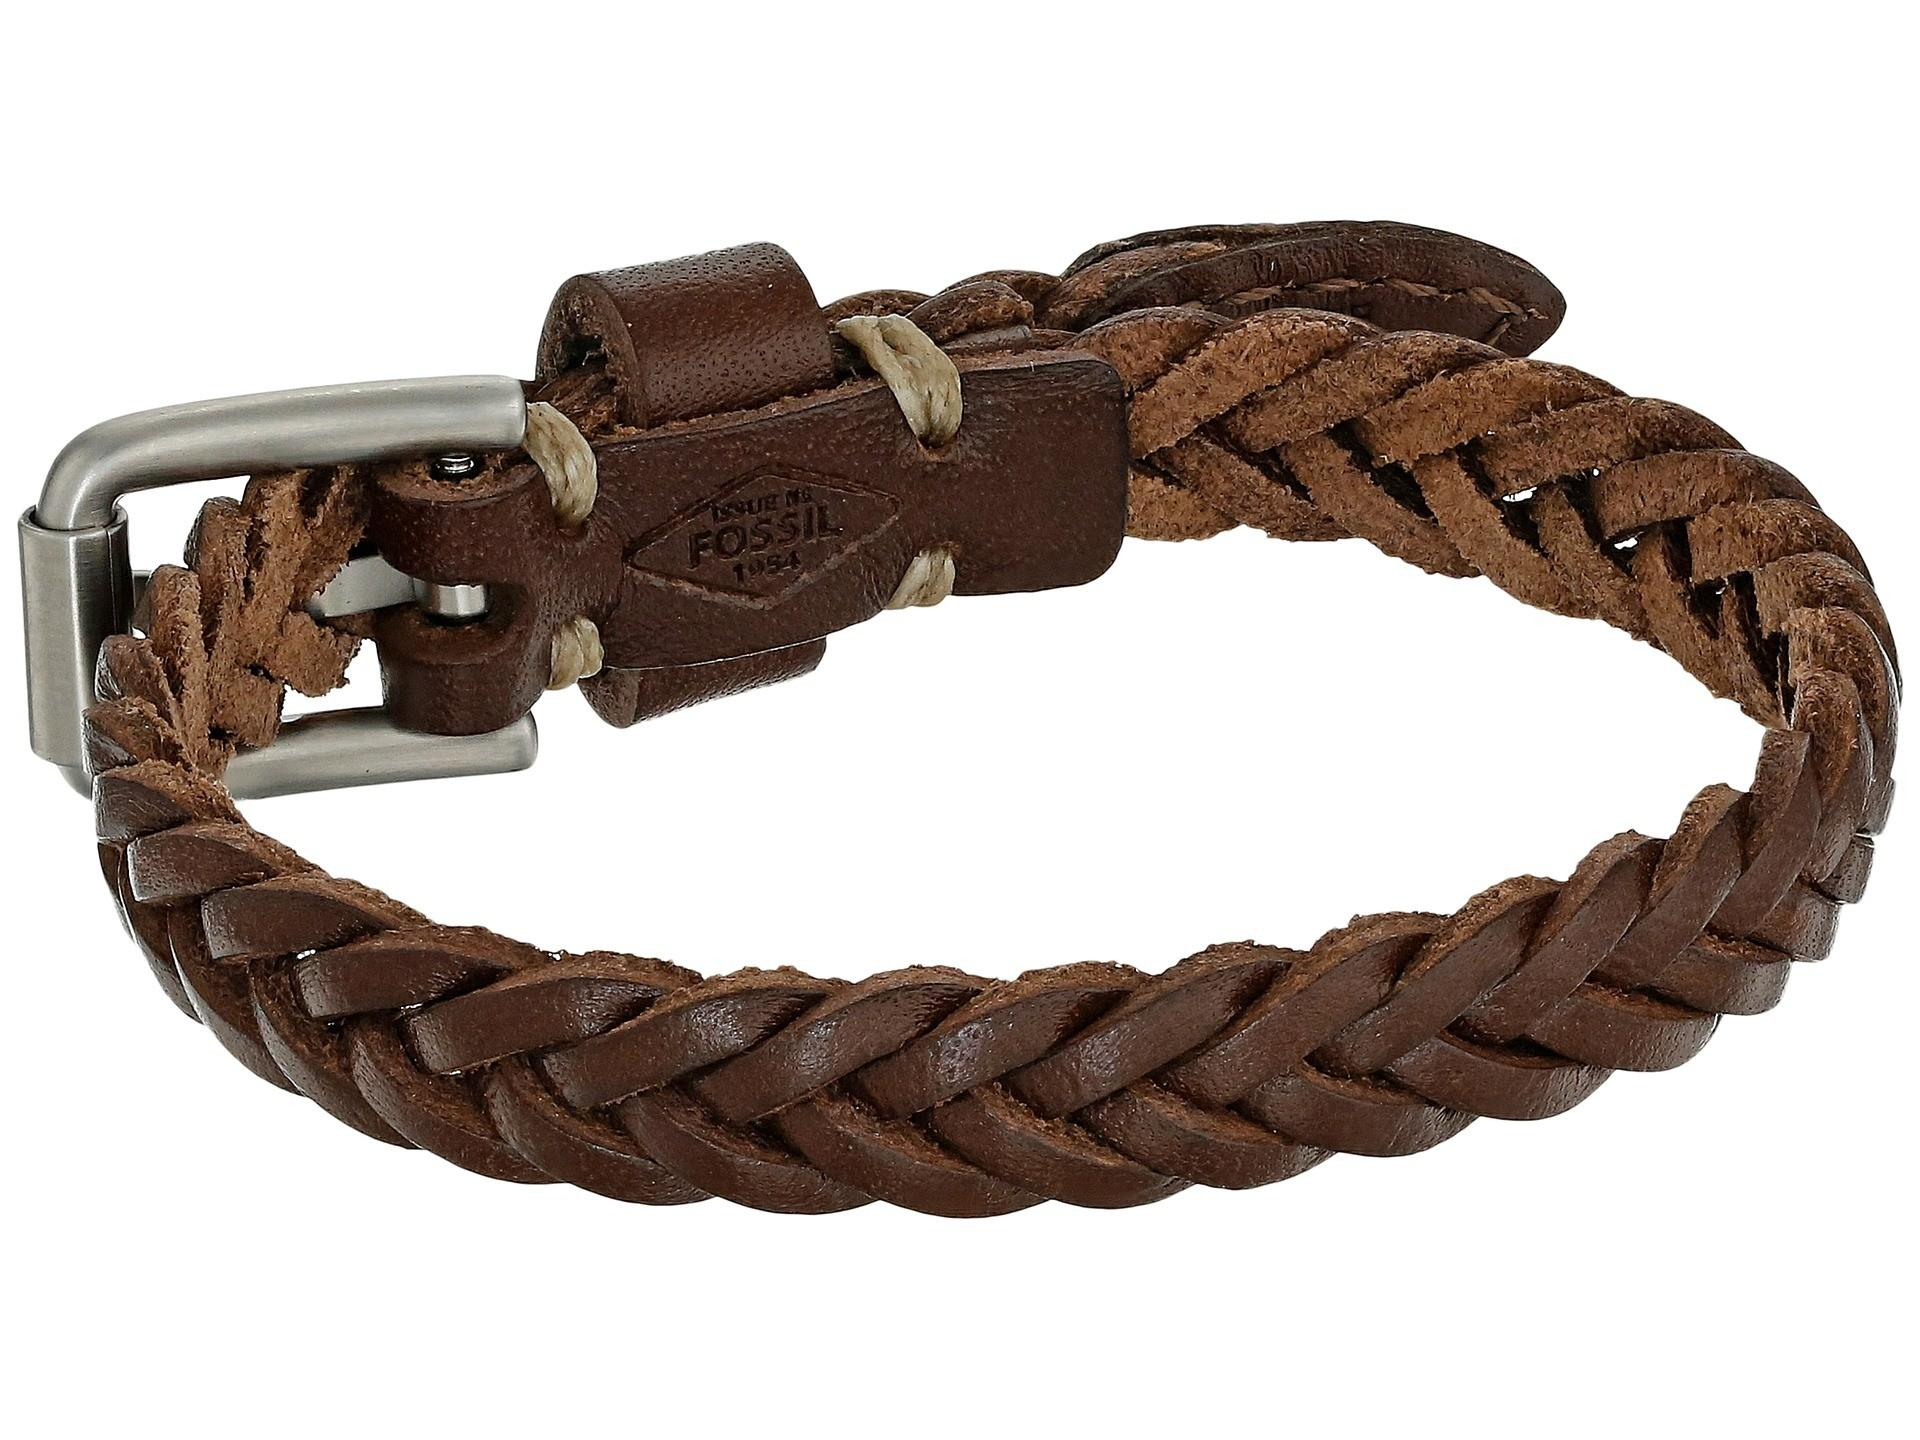 Fossil Vintage Casual Braided Leather Bracelet Brown